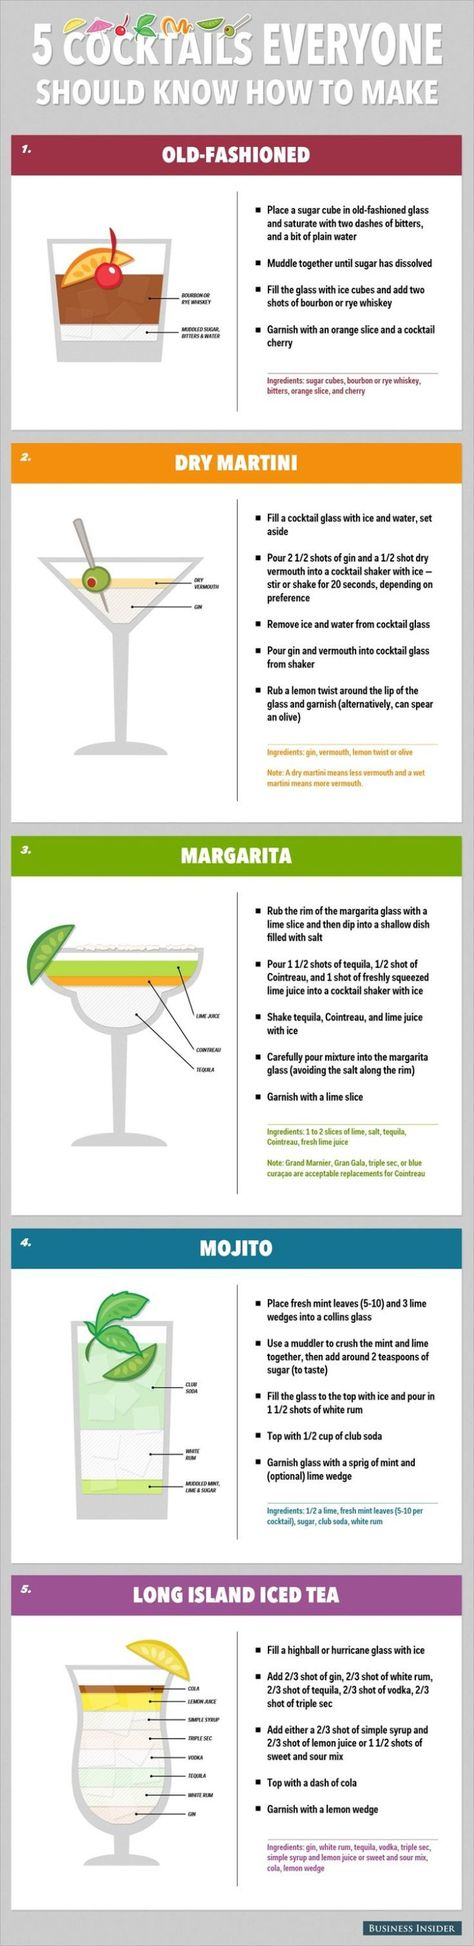 And you should definitely know how to make these 5 cocktails at home. Info via Insider.